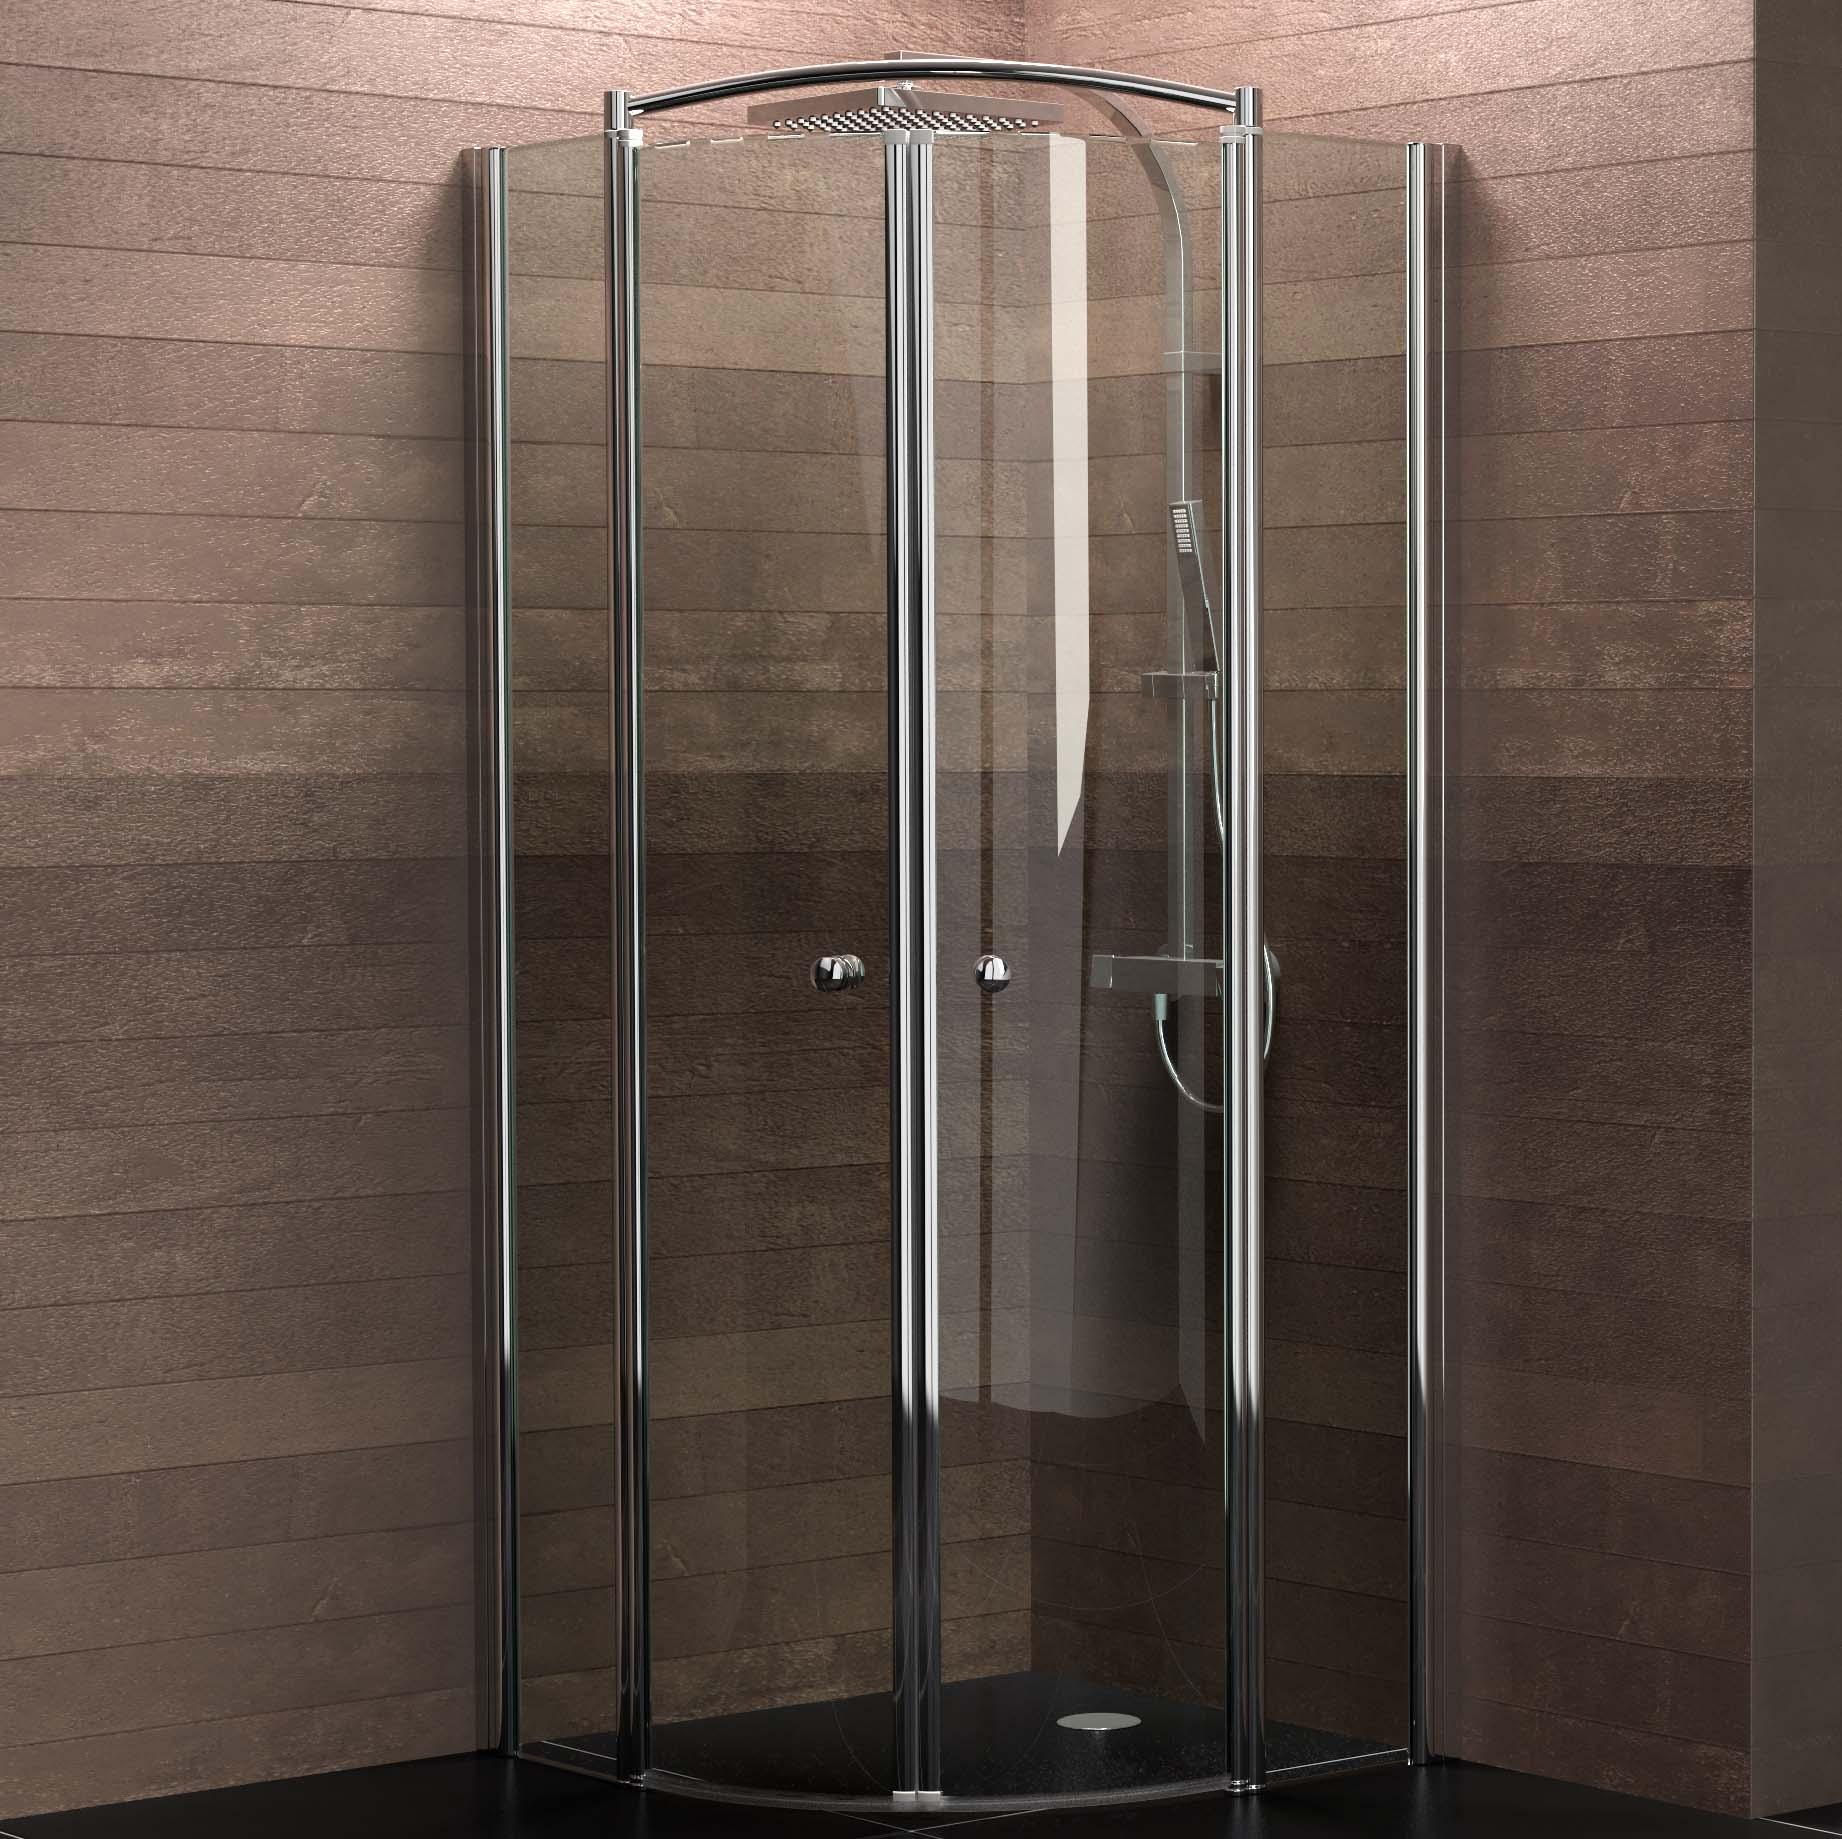 schulte duschkabine runddusche 90x90 cm viertelkreis radius 550 6mm glas mit glasversiegelung. Black Bedroom Furniture Sets. Home Design Ideas